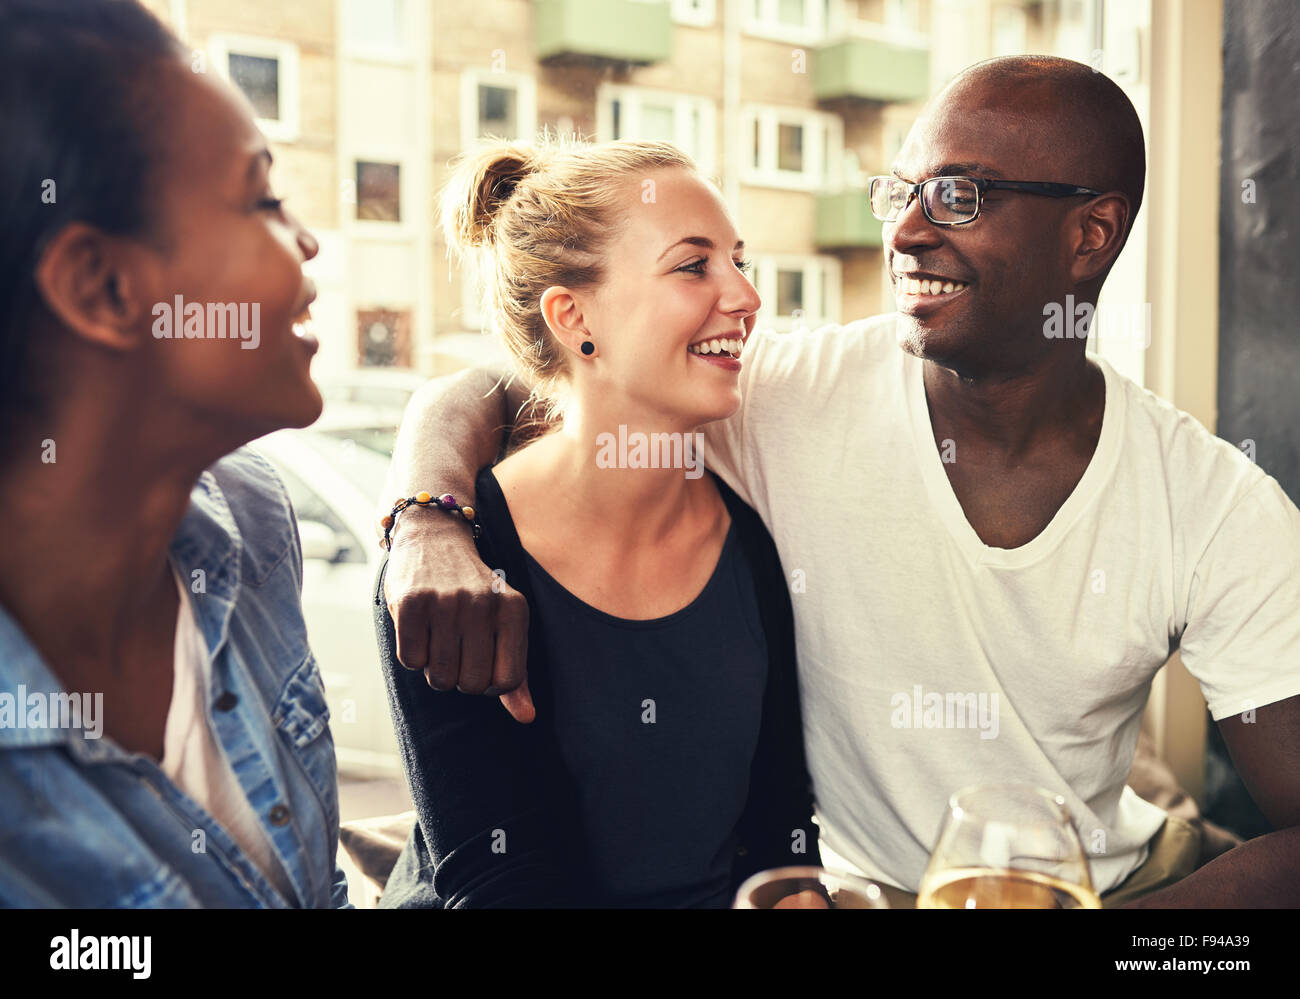 Multi Ethnic couple smiling at each other Photo Stock